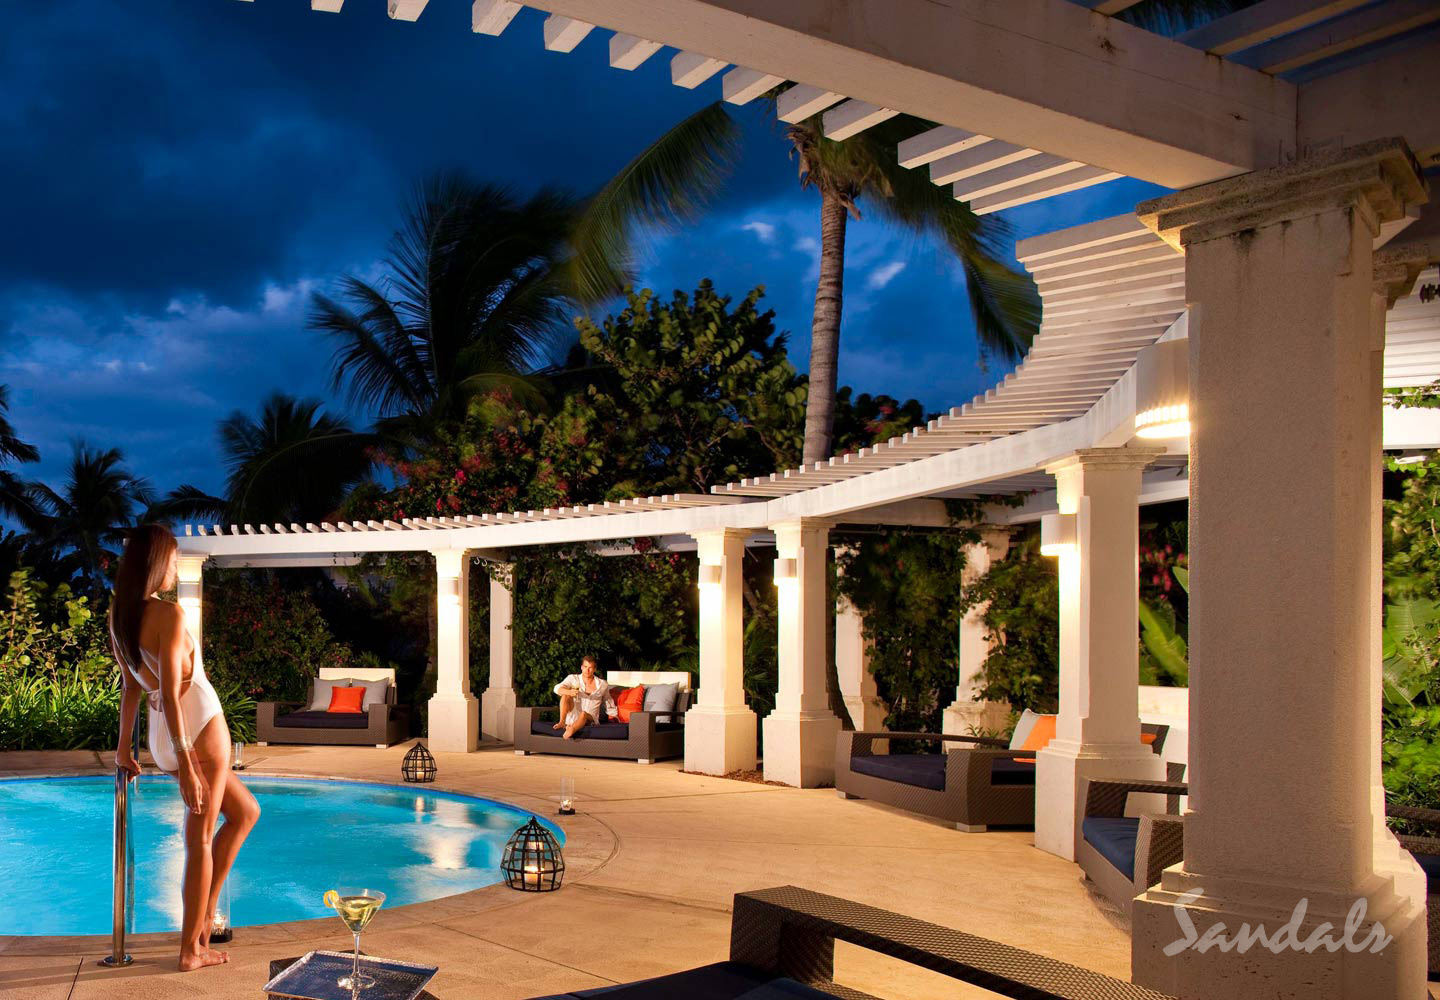 Travel Agency All-Inclusive Resort Sandals Emerald Bay 048